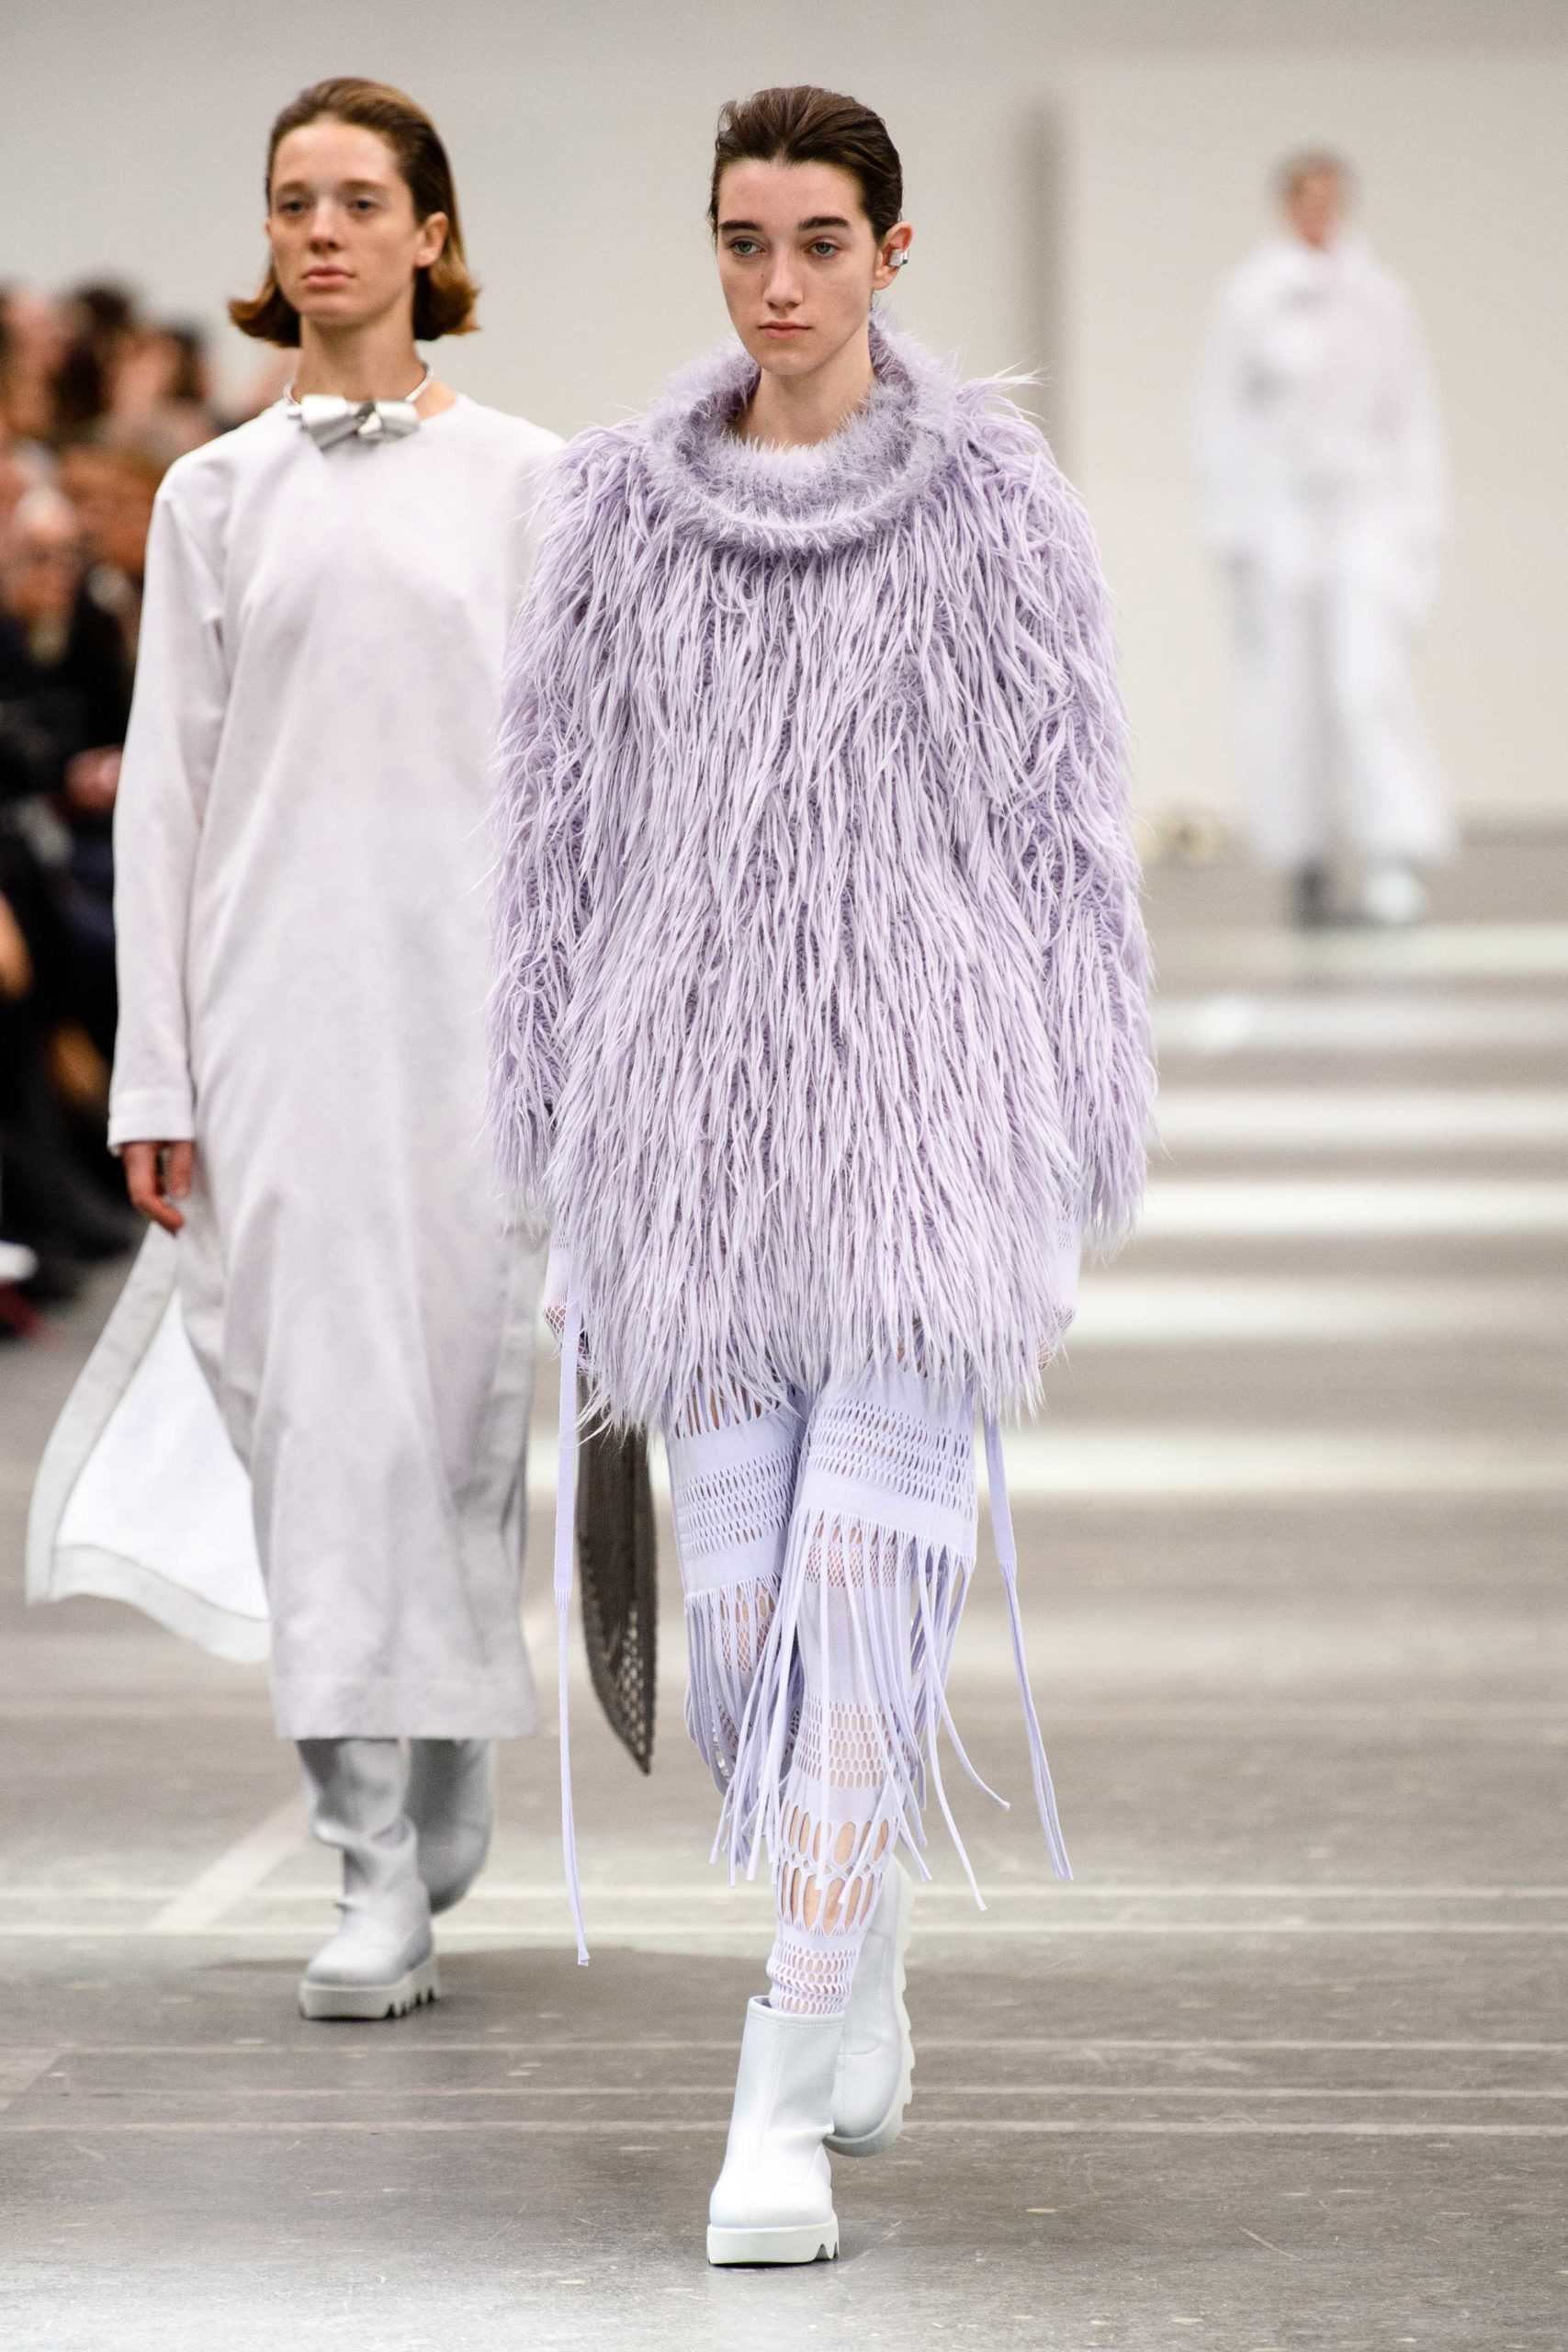 Issey Miyake Fall 2020 trends runway coverage Ready To Wear Vogue feather and fringe shaggy